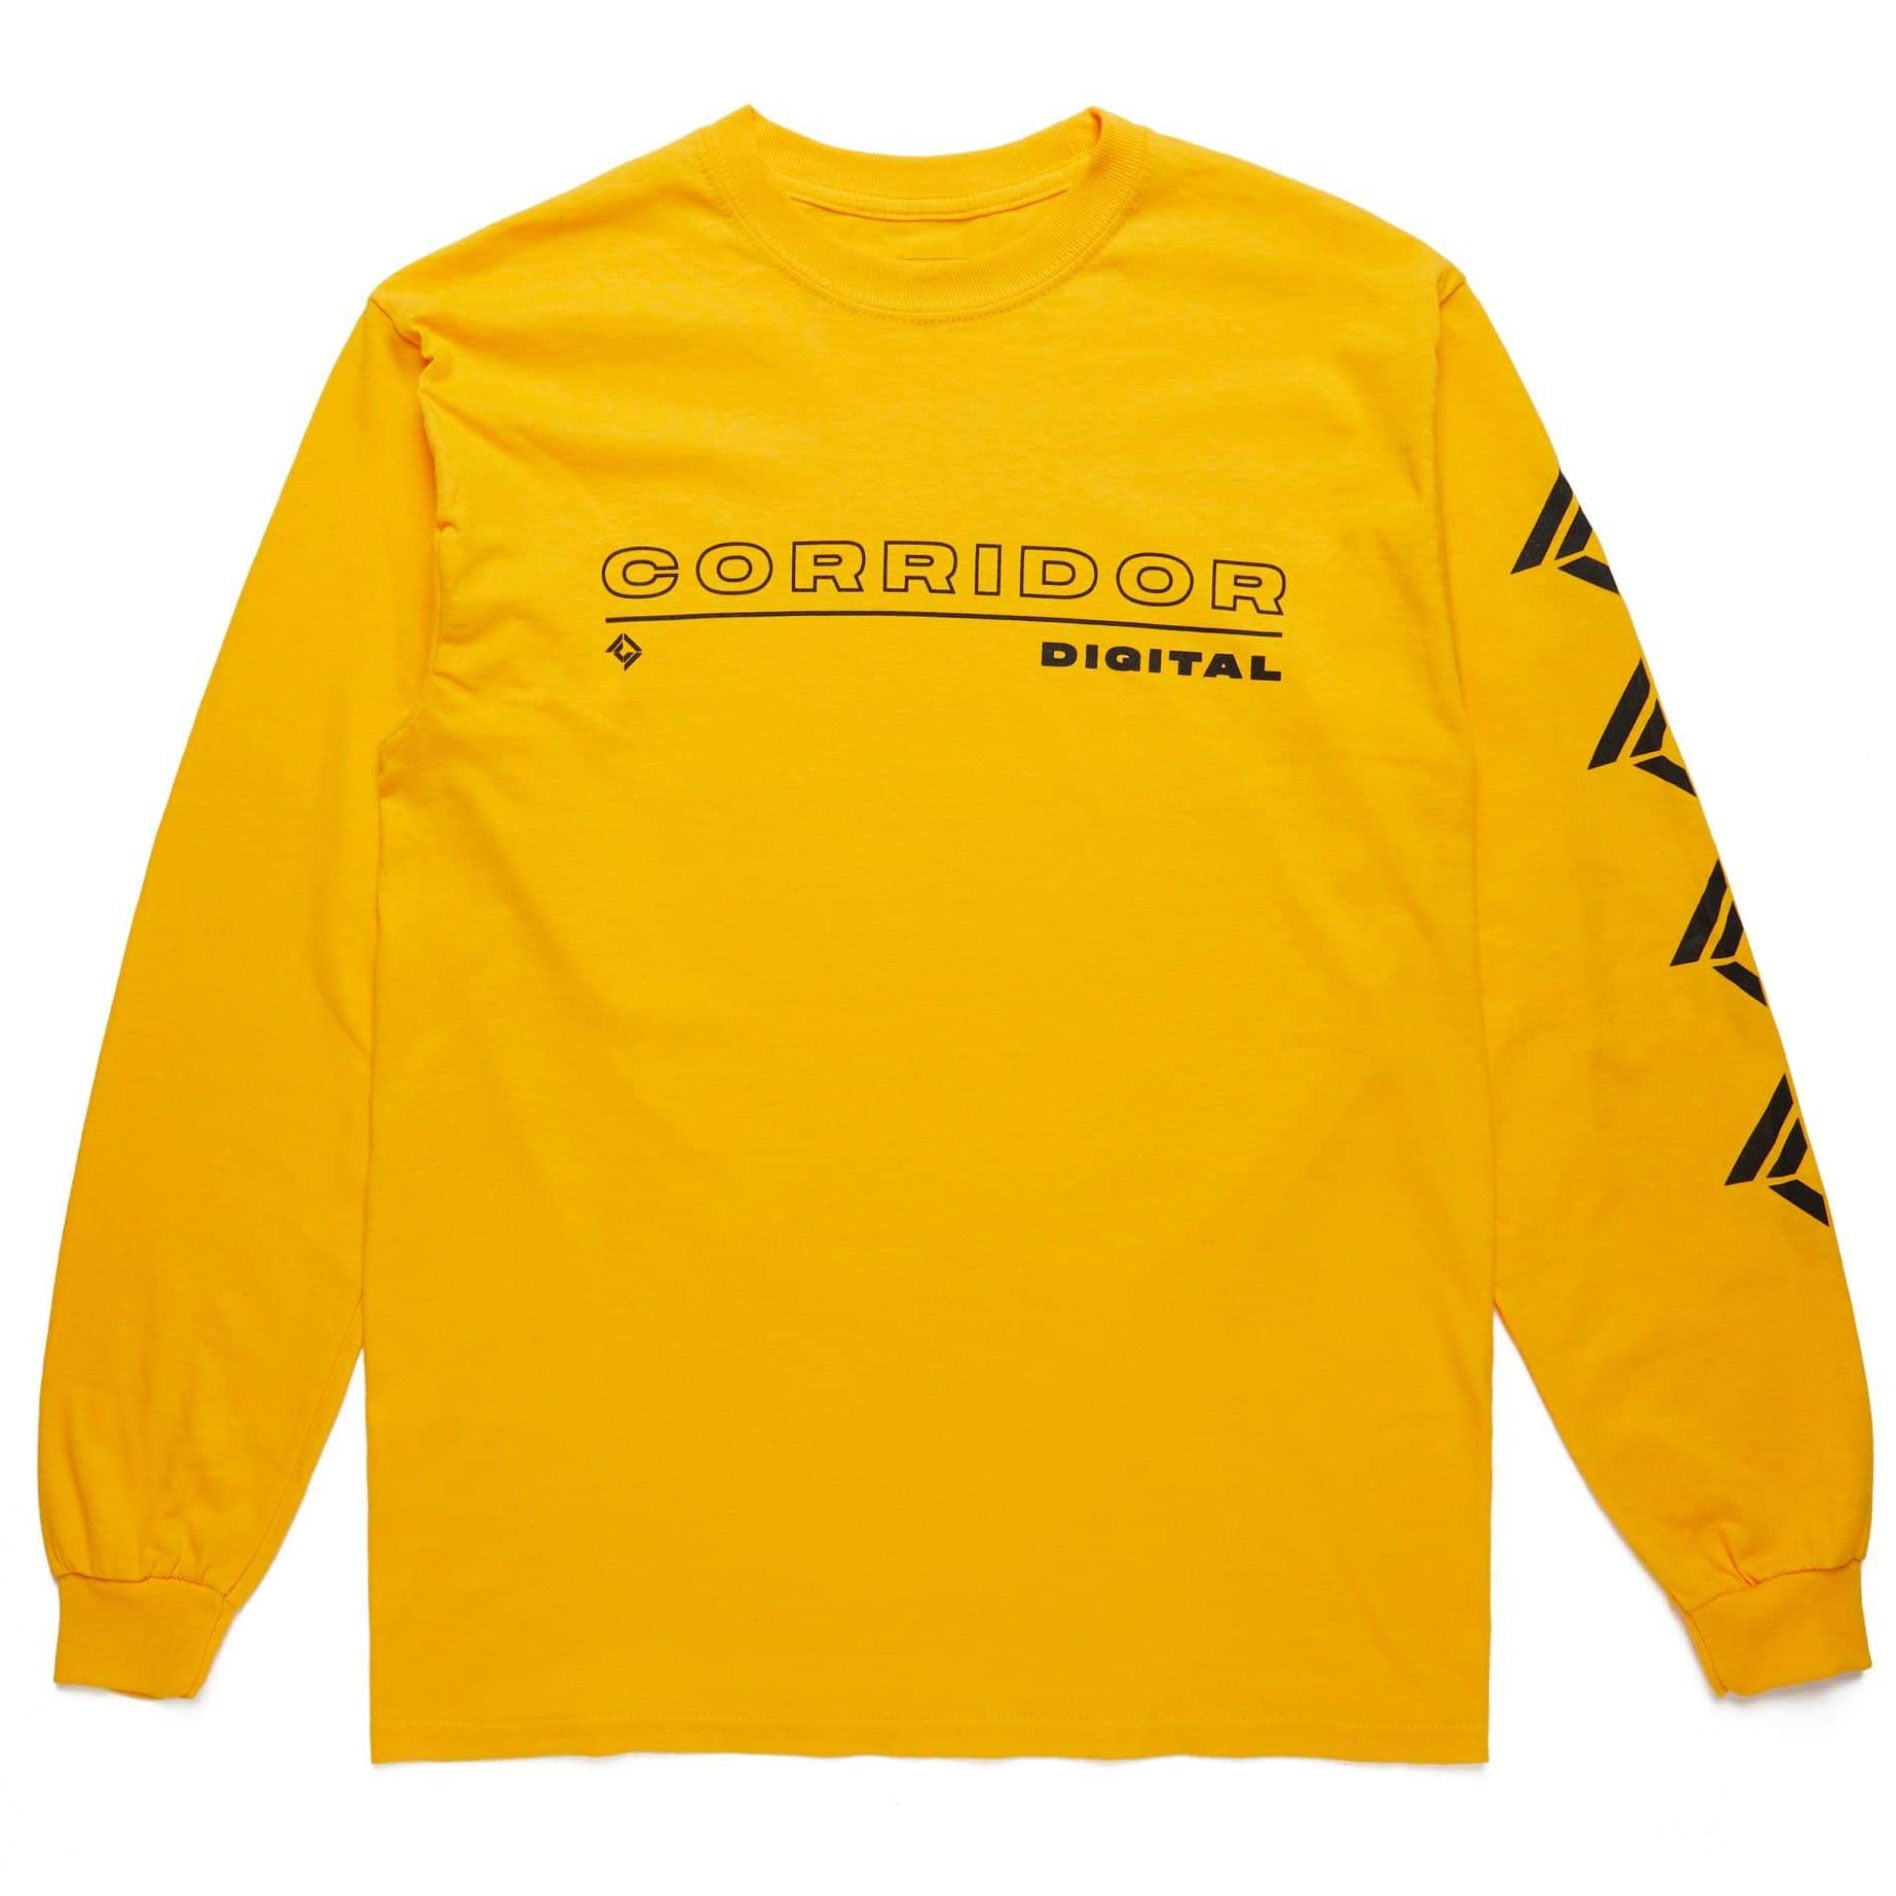 Corridor Digital Long Sleeve T-Shirt